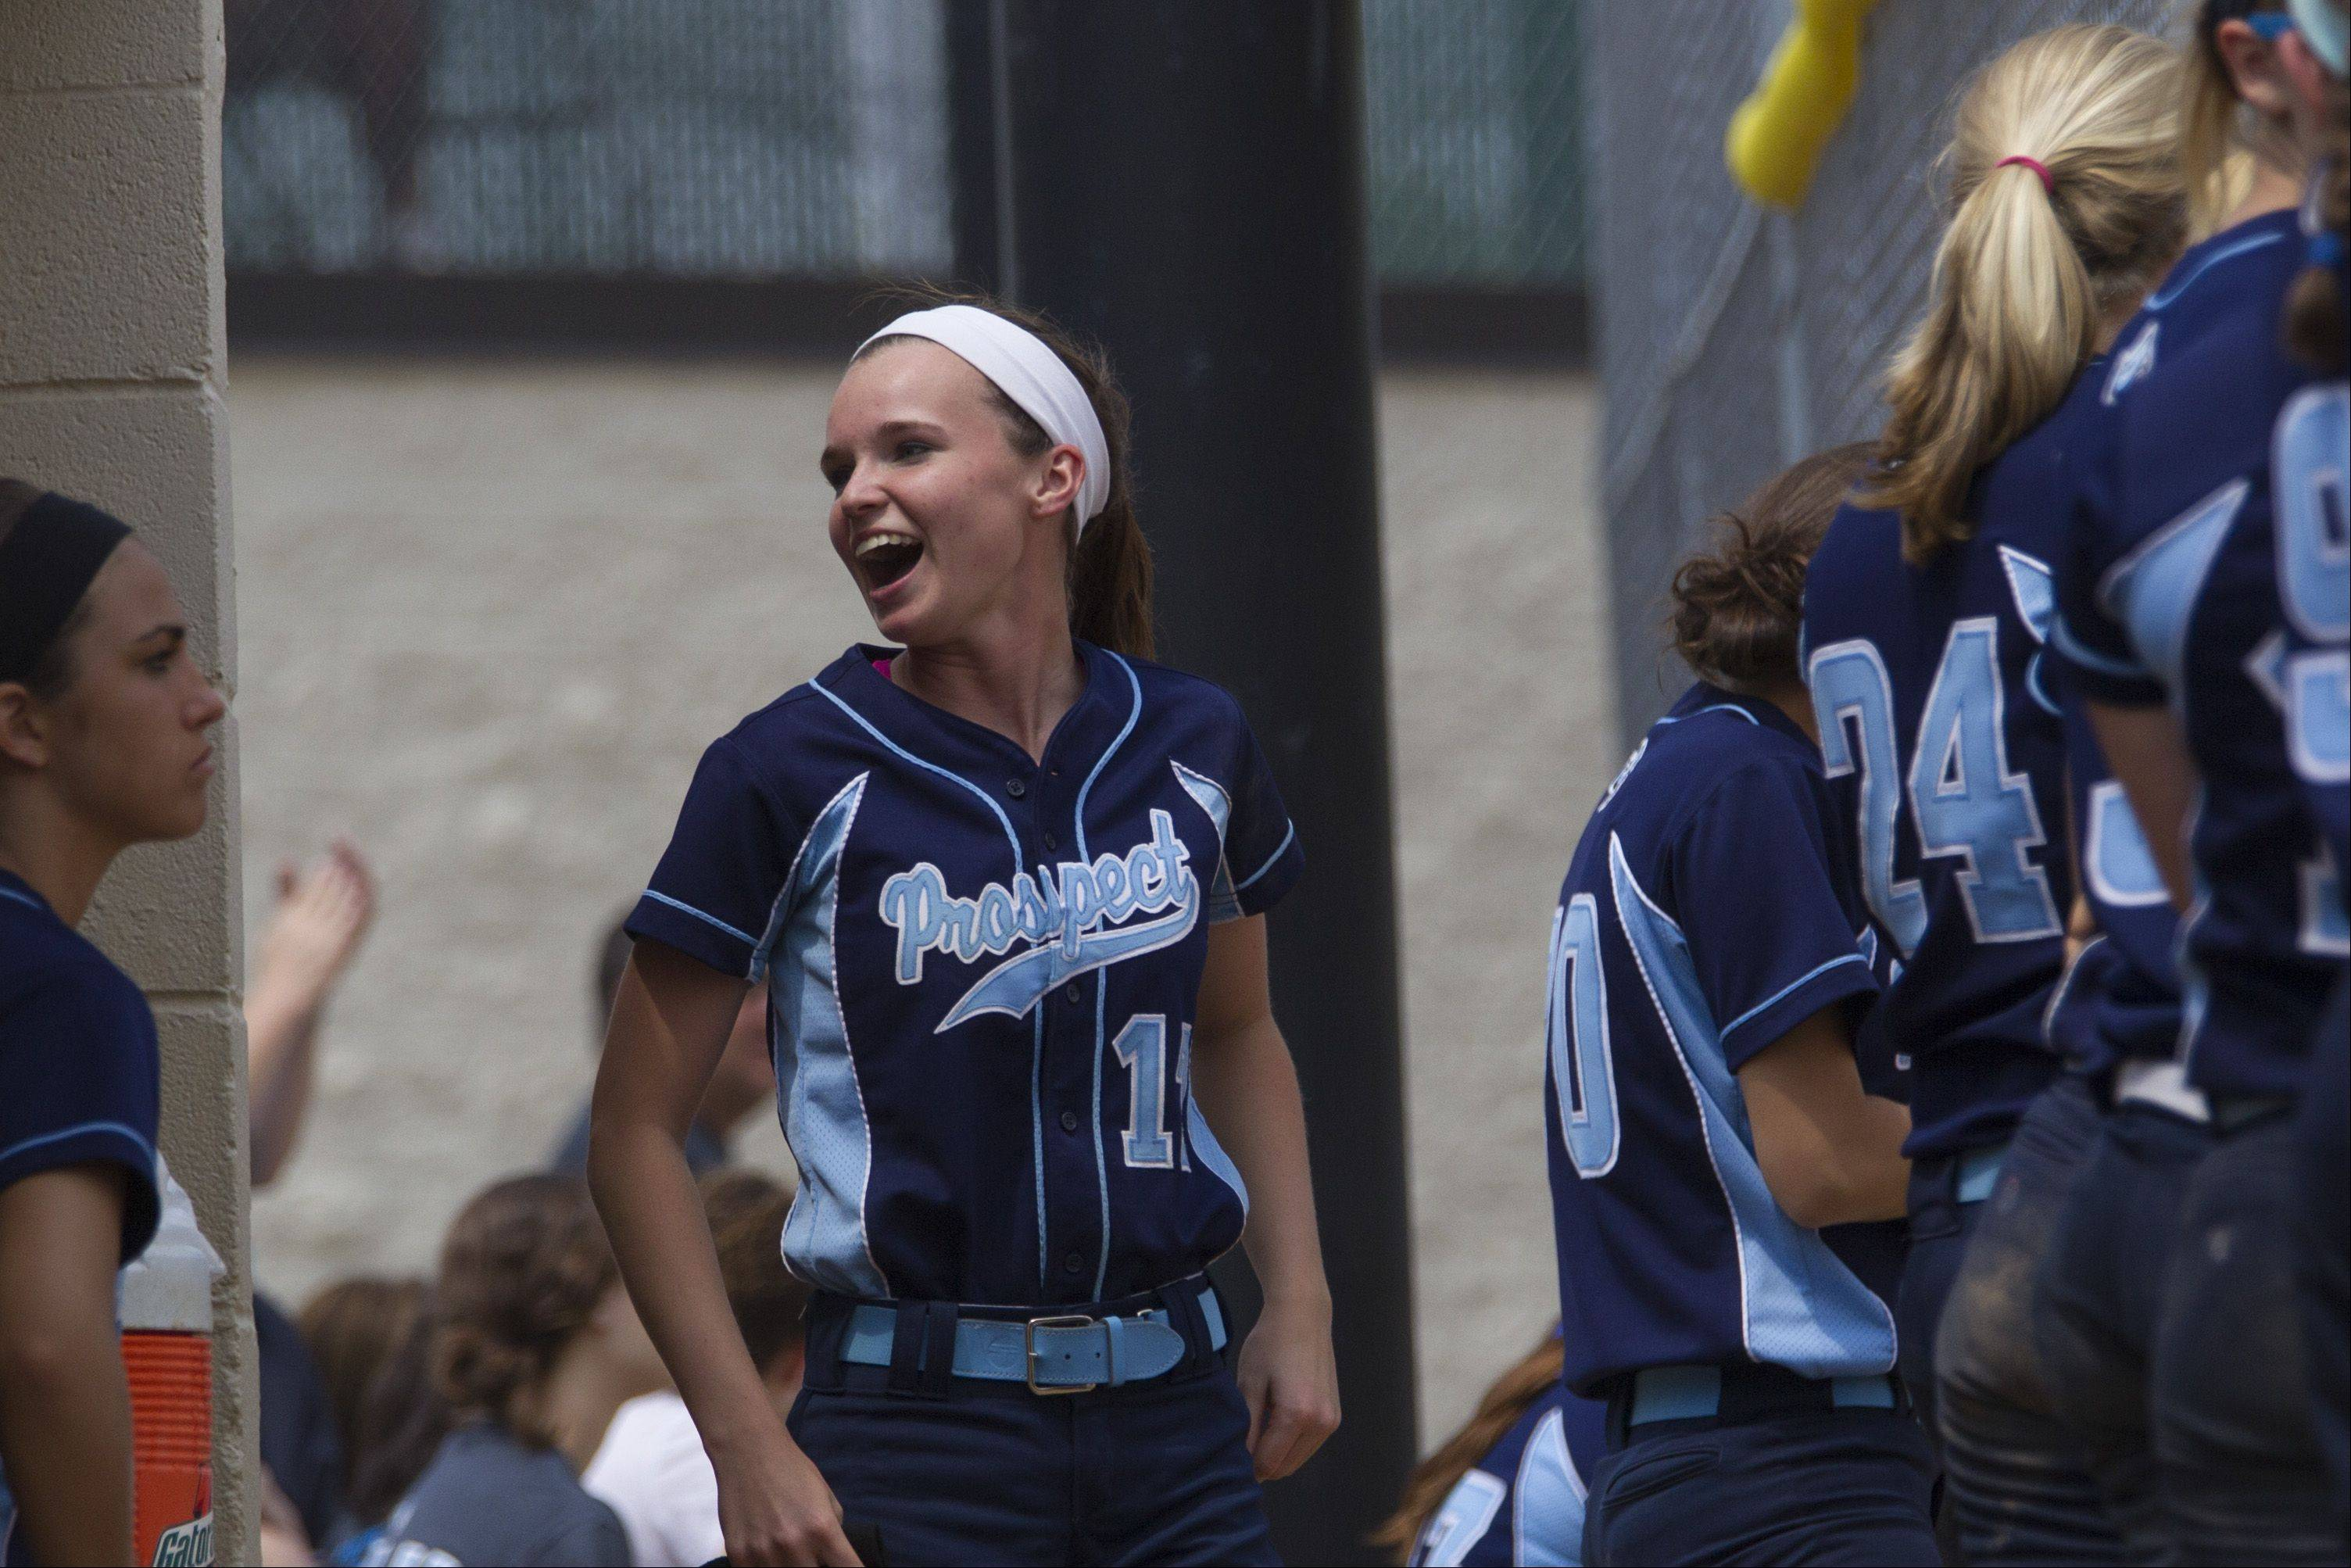 Prospect's Sarah Scaccia tries to pump up her teammates in extra innings against Barrington on Saturday.